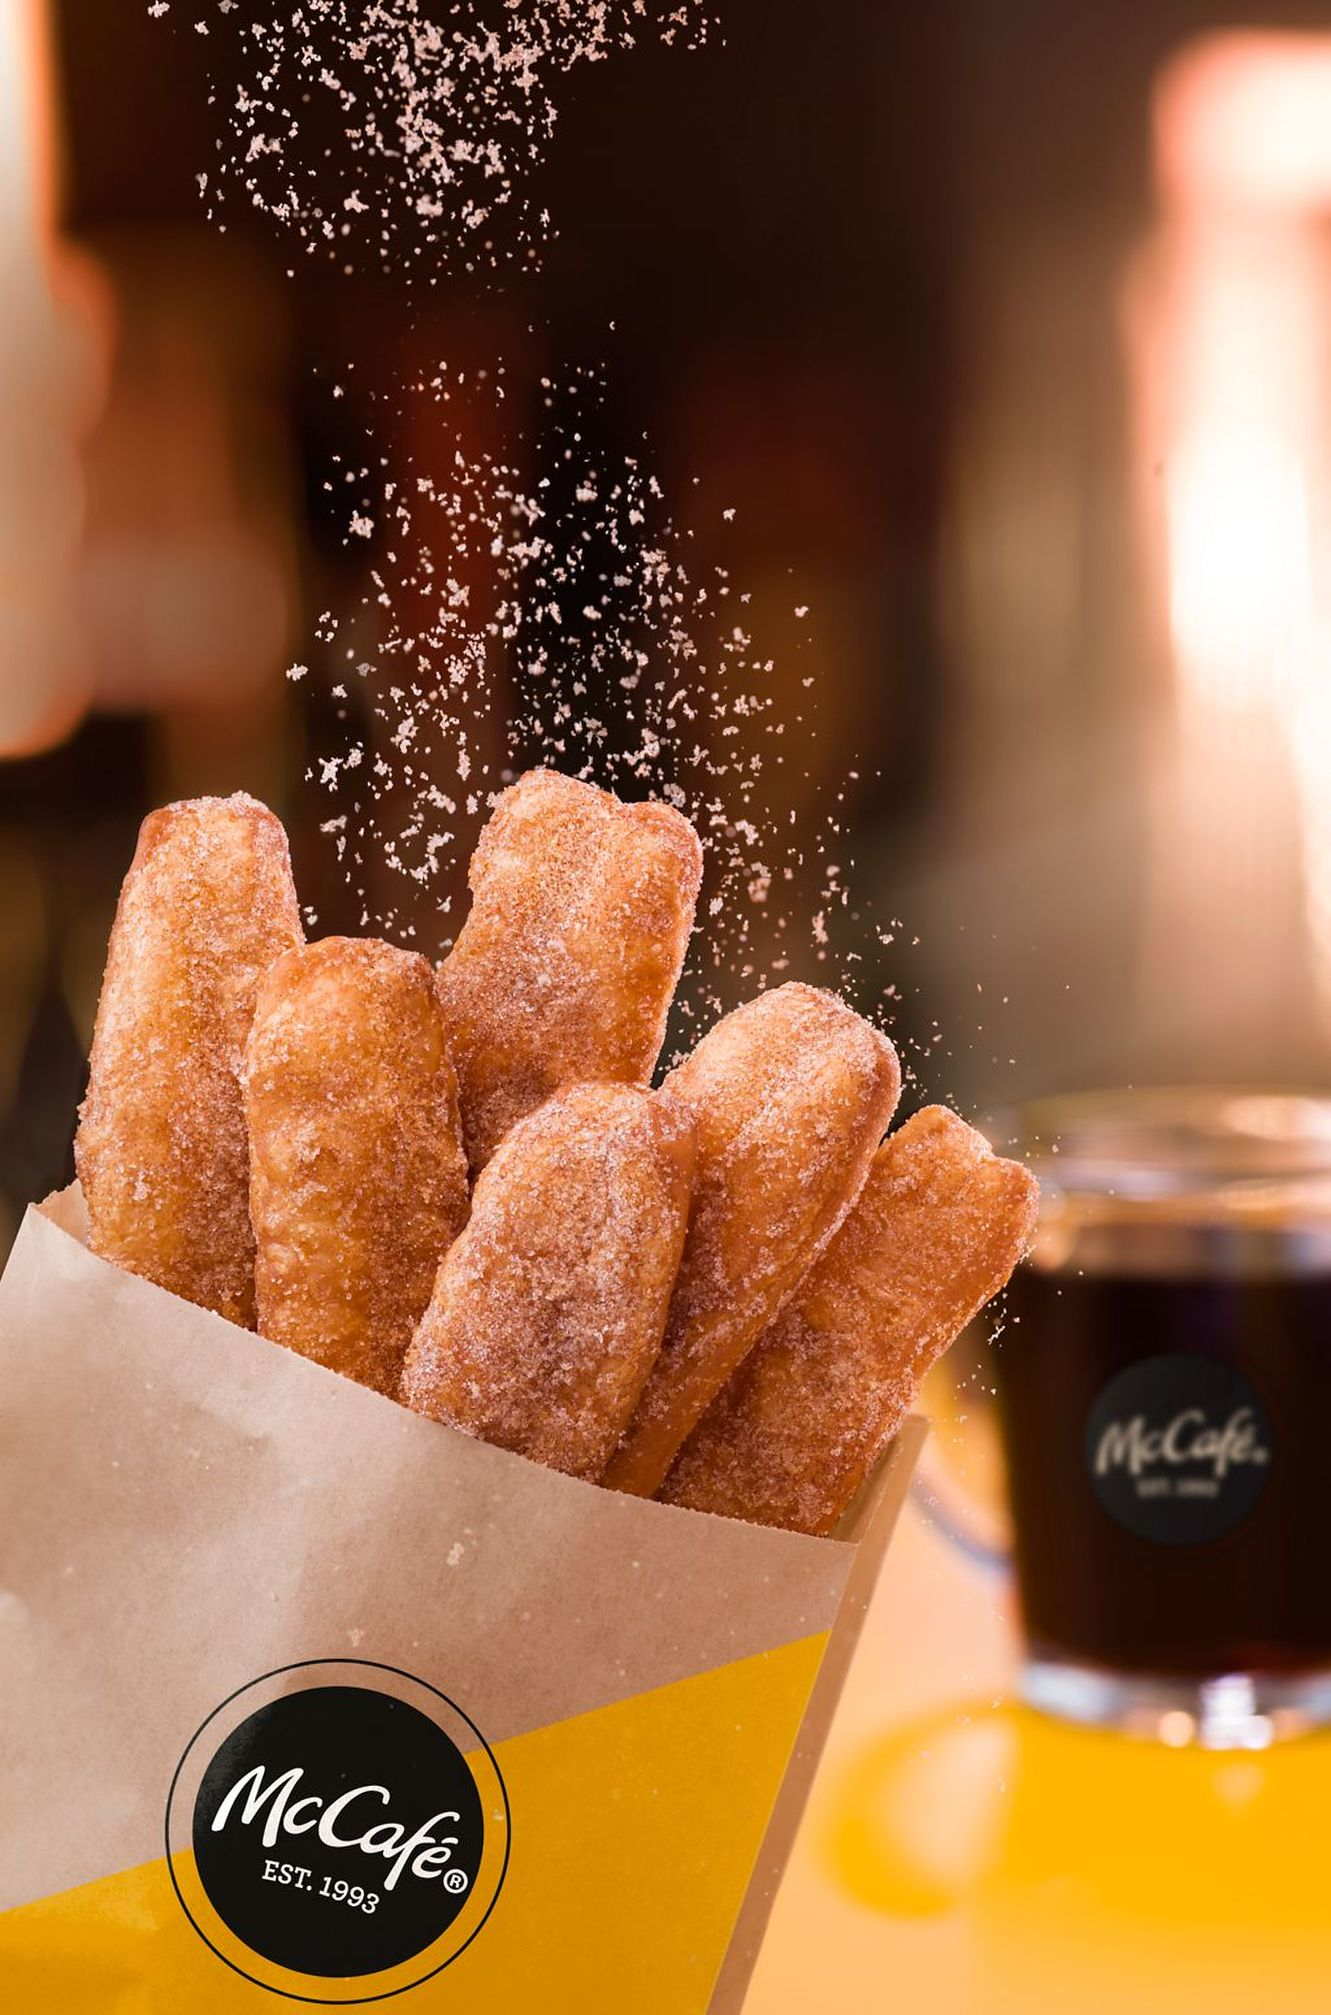 Six McDonald's Donut Sticks sticking out of a paper bag with cinnamon sugar being sprinkled on top